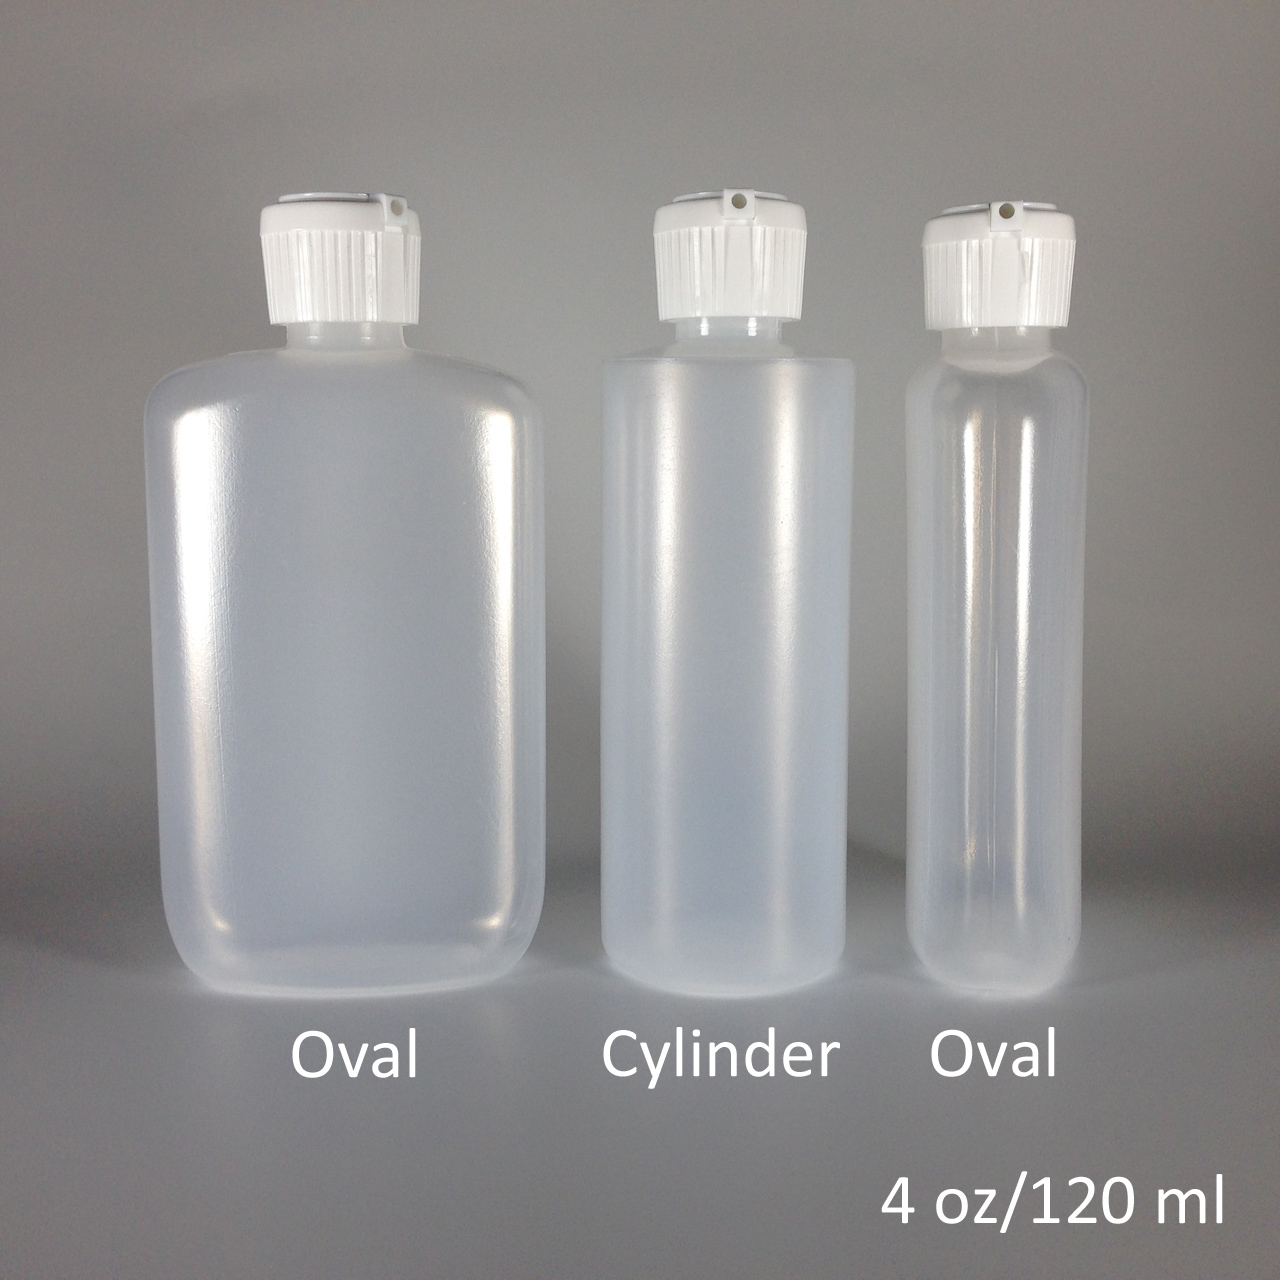 flip-top-oval-vs-cylinder-bottle-4oz.jpg